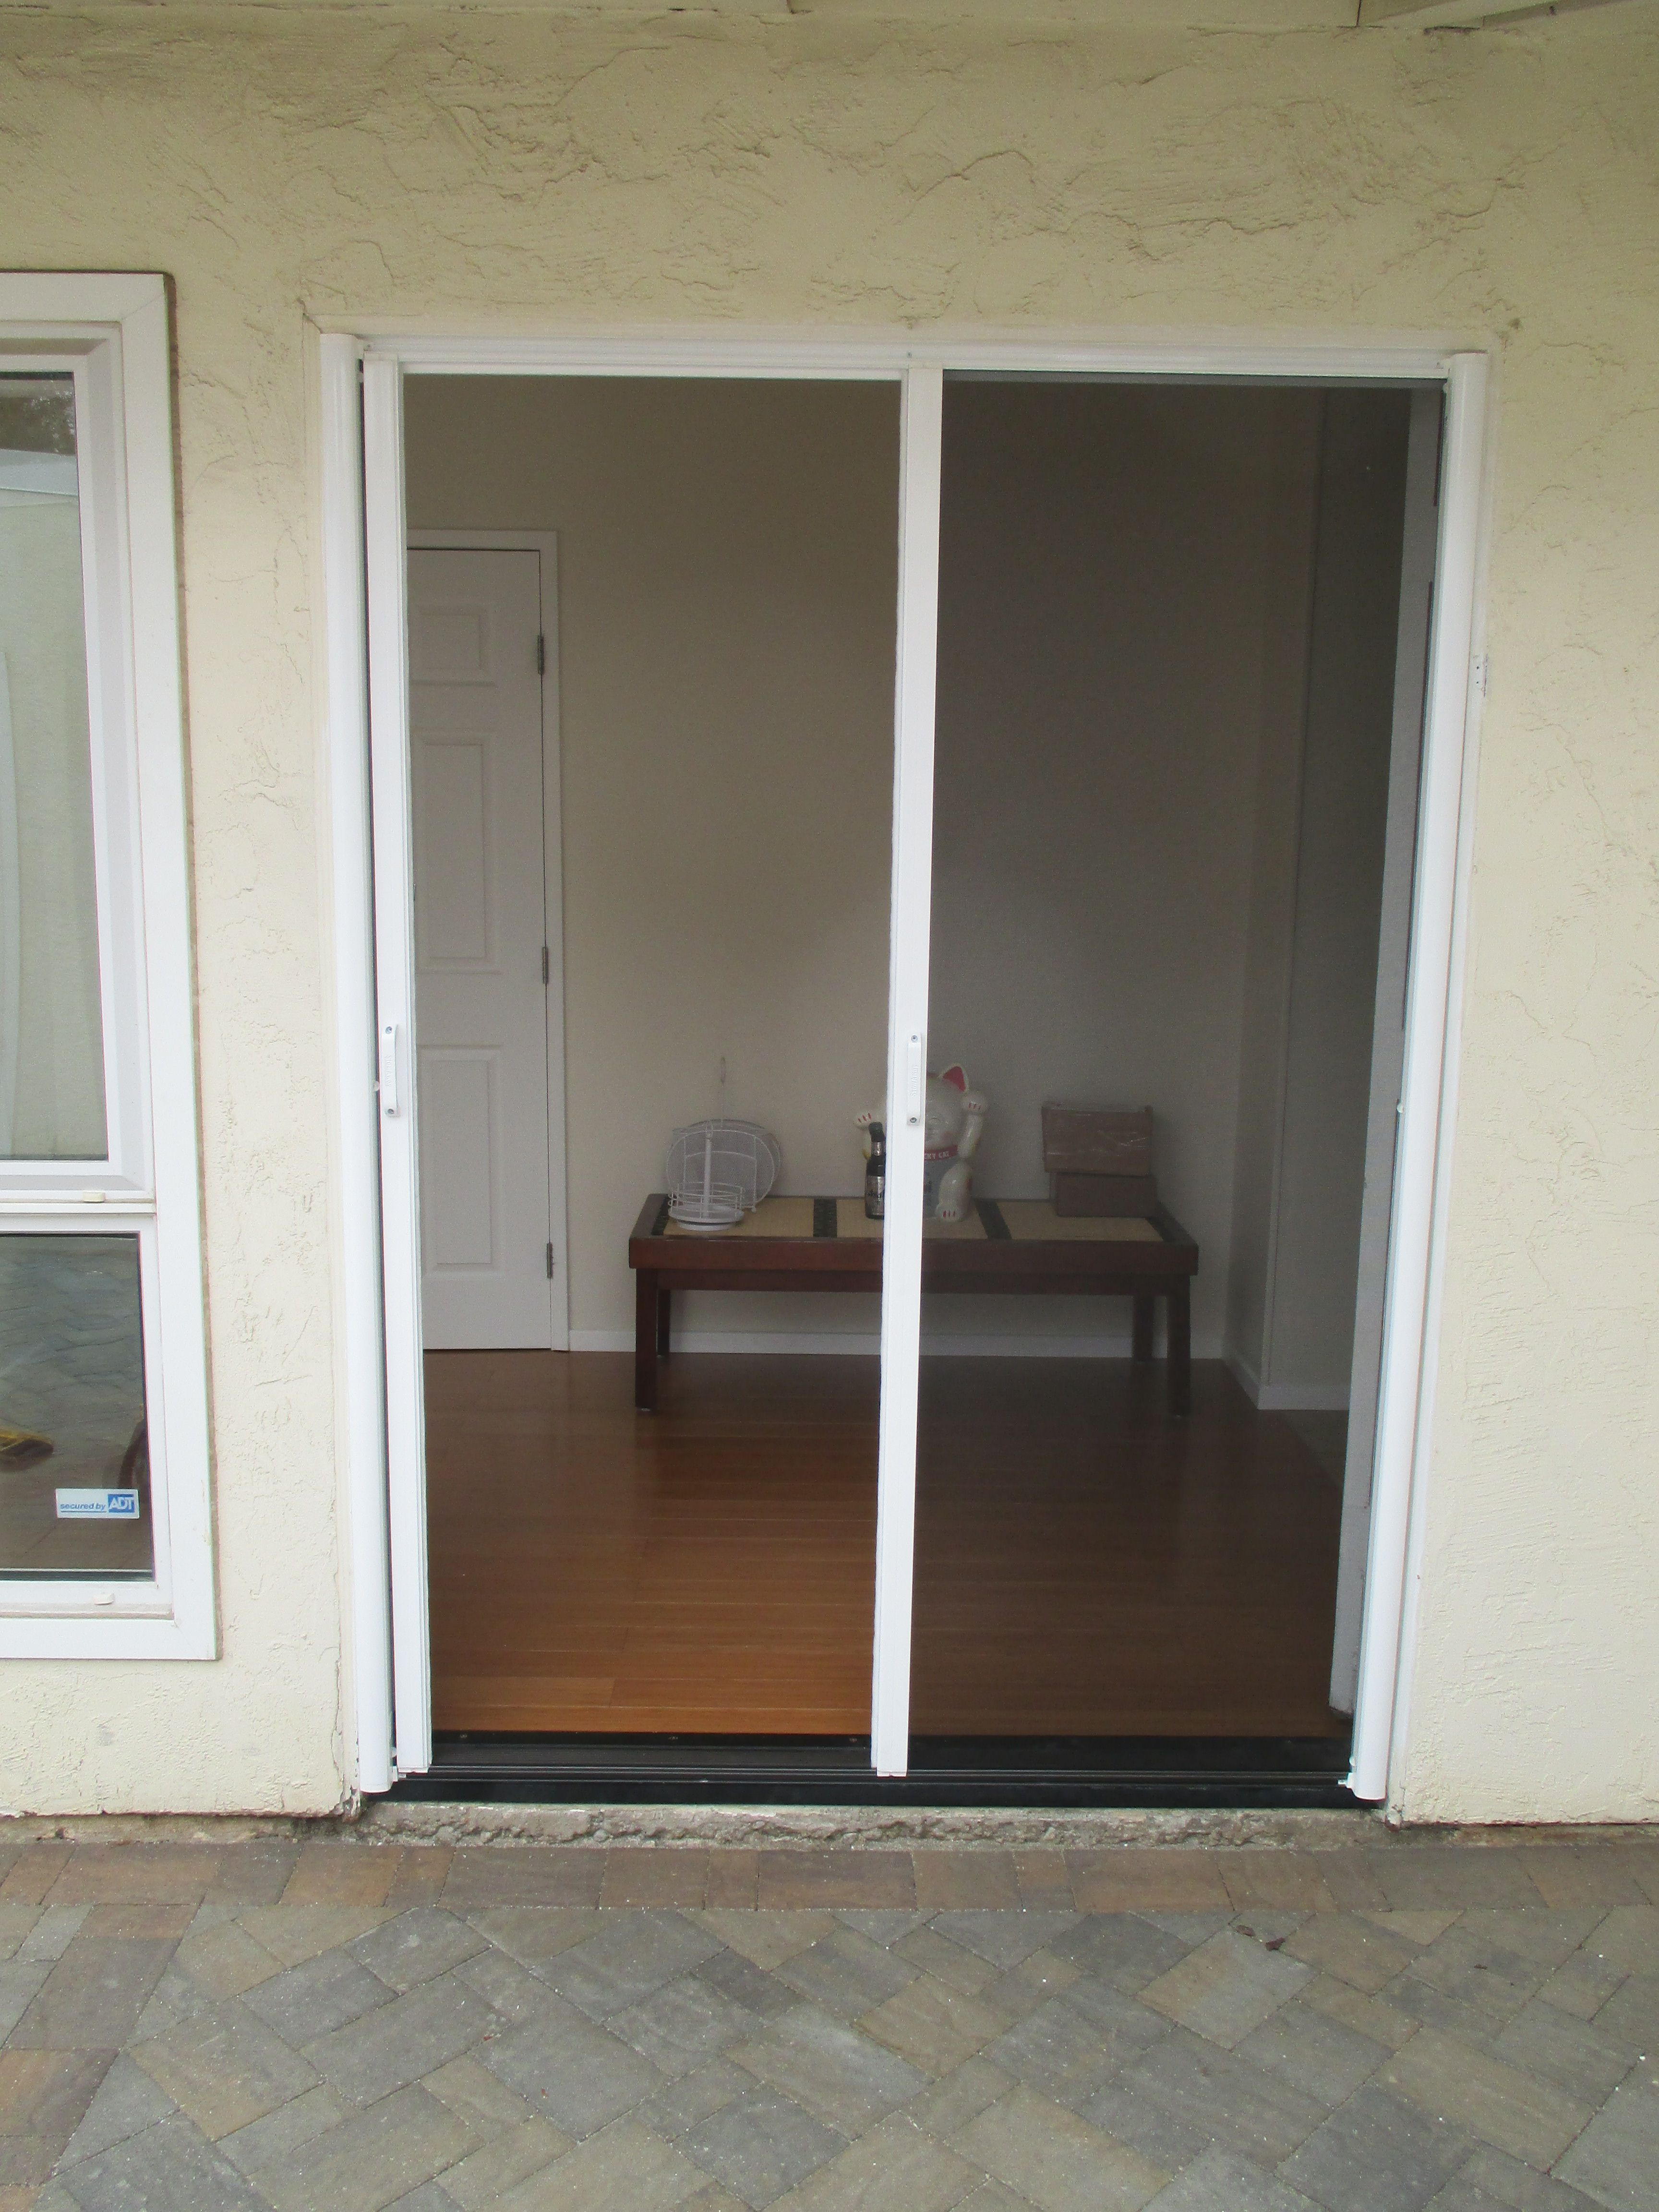 What a day of Retractable Screen Doors. The benefit of